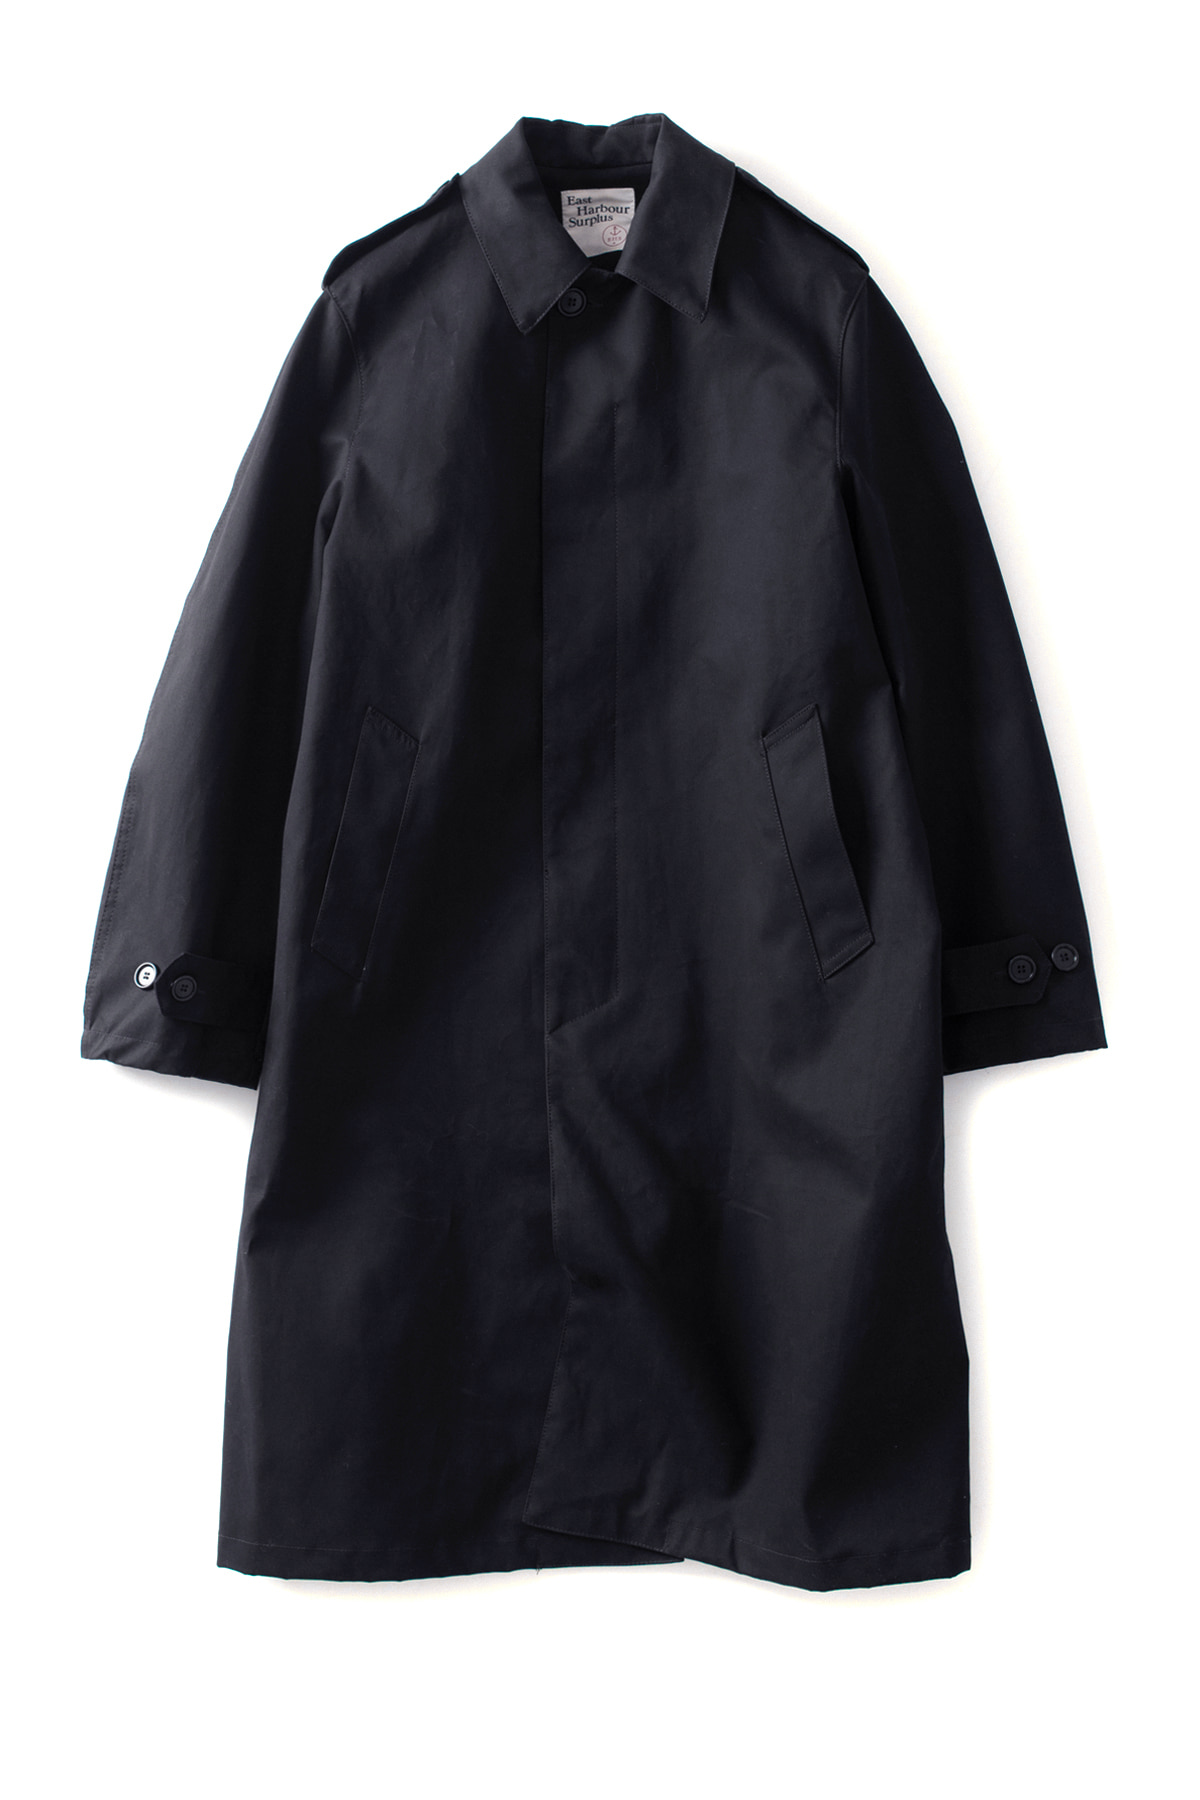 East Harbour Surplus : Fabian Trench (Black)